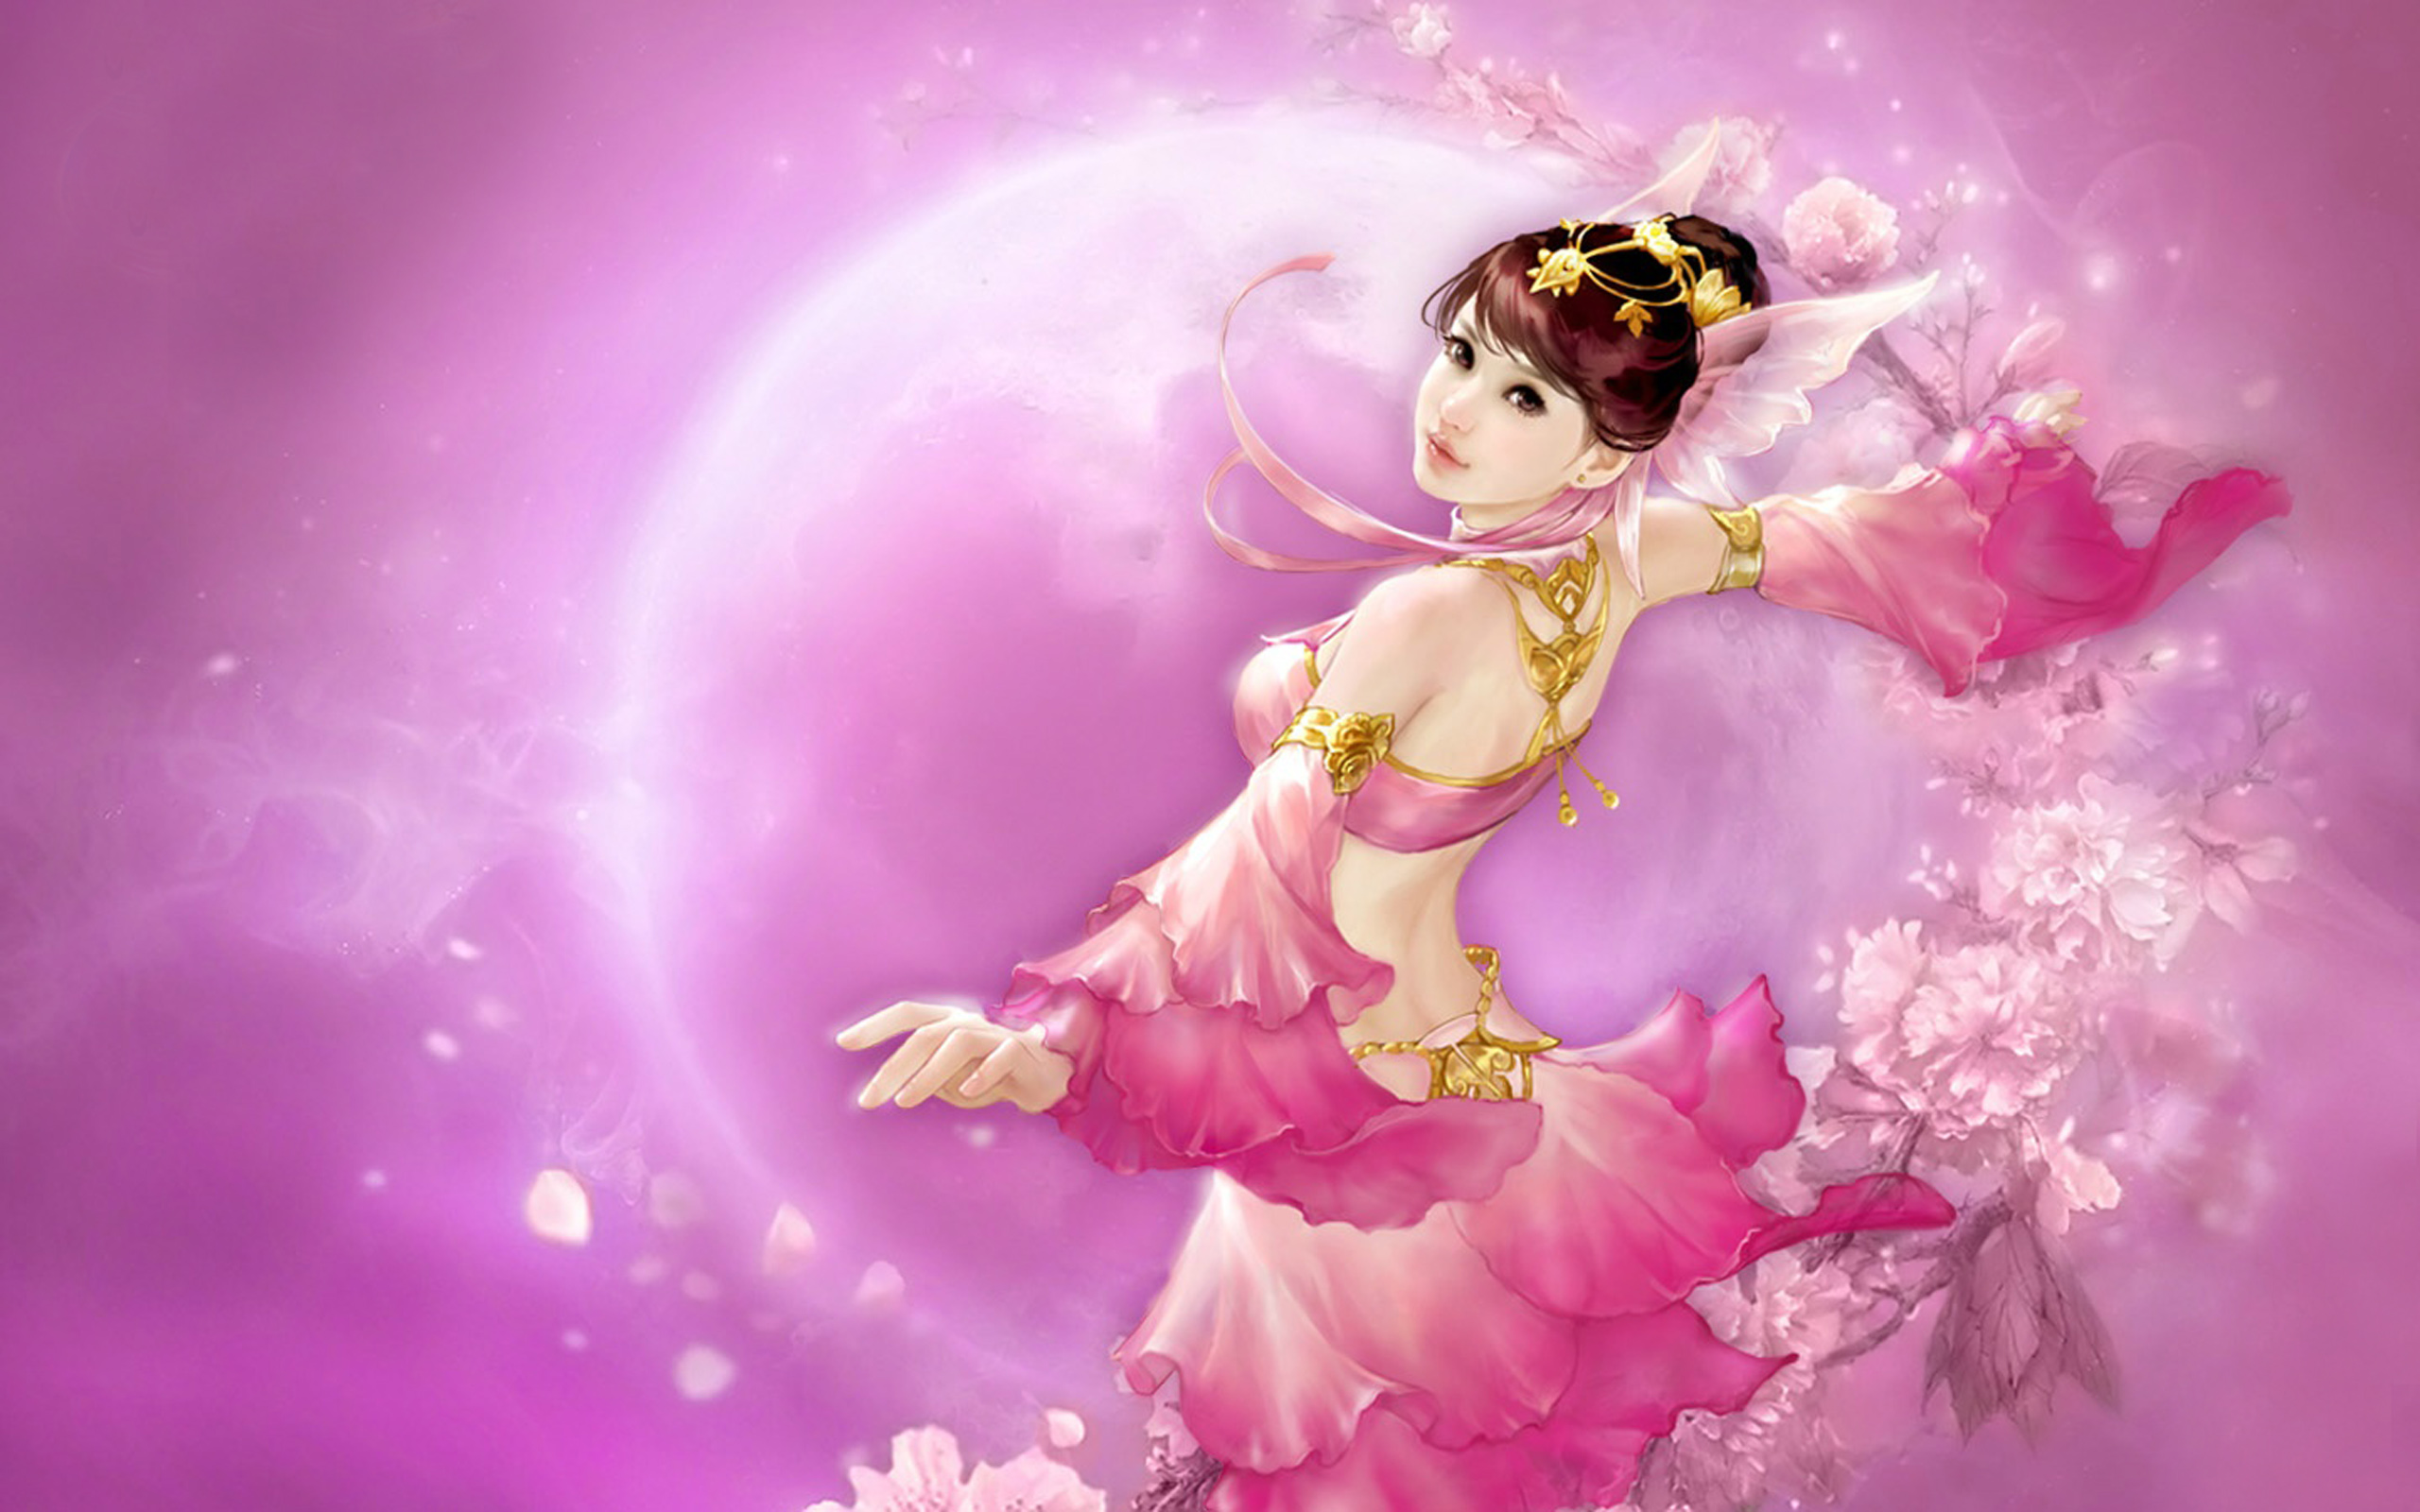 Dream Girl Hd Wallpaper Game Moon Shadow Legend Asian Girl Oriental Dance With